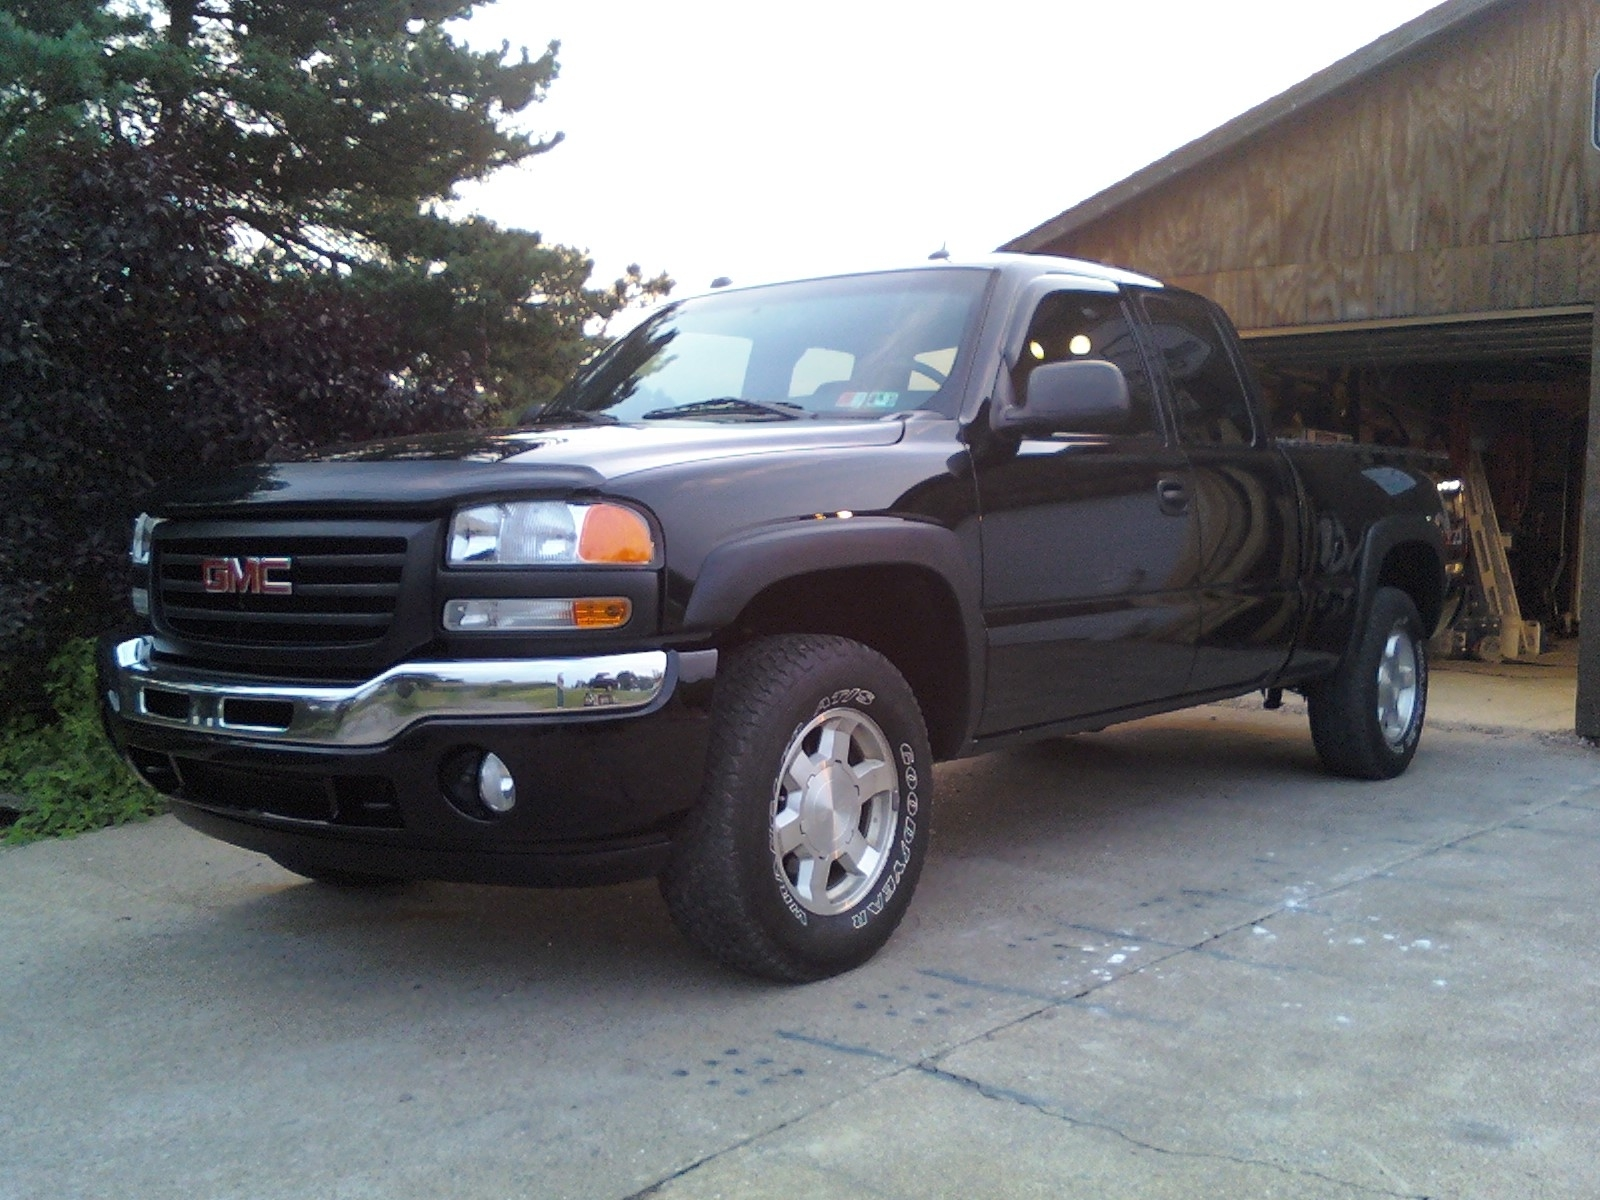 spminich 2005 gmc sierra 1500 extended cab specs photos modification info at cardomain. Black Bedroom Furniture Sets. Home Design Ideas